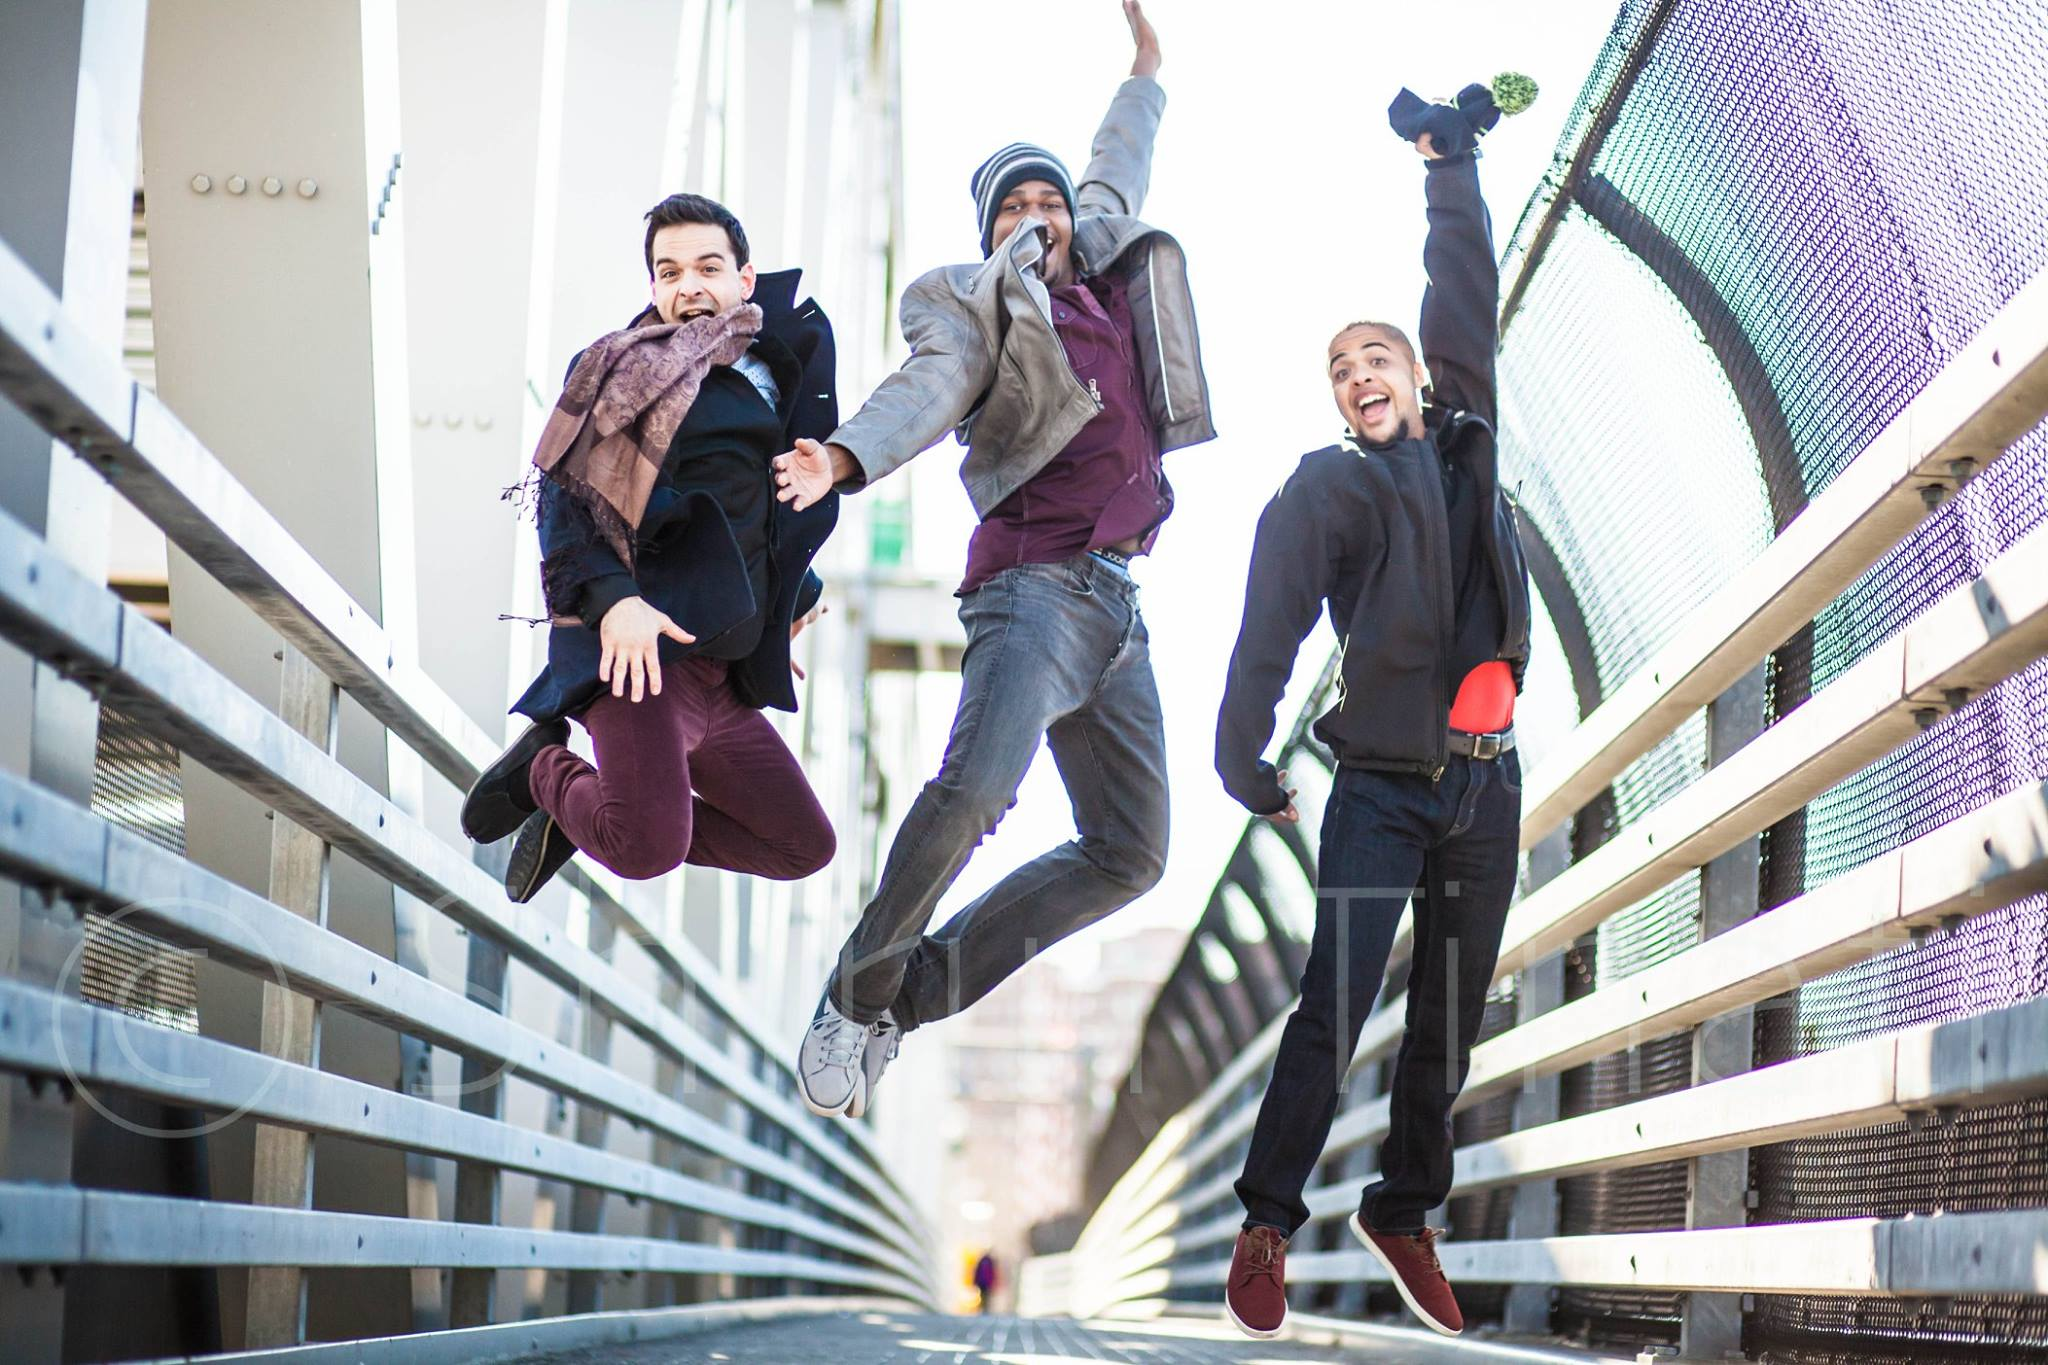 A photograph of Damien on a bridge with three friends, enjoying the day. Photo by Shirin Tinati.